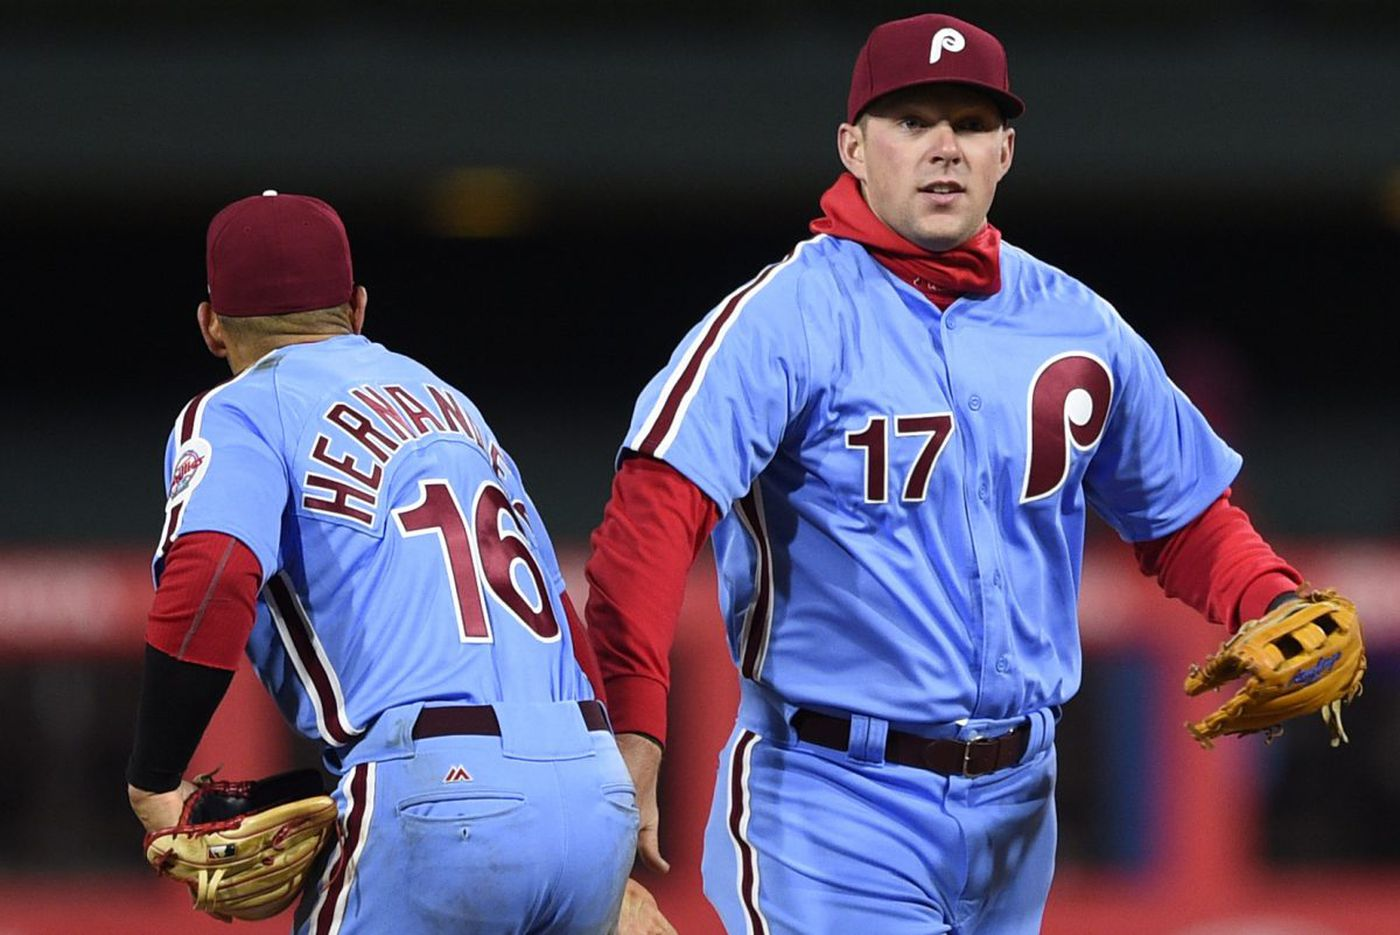 Phillies, Rhys Hoskins don't panic with two strikes